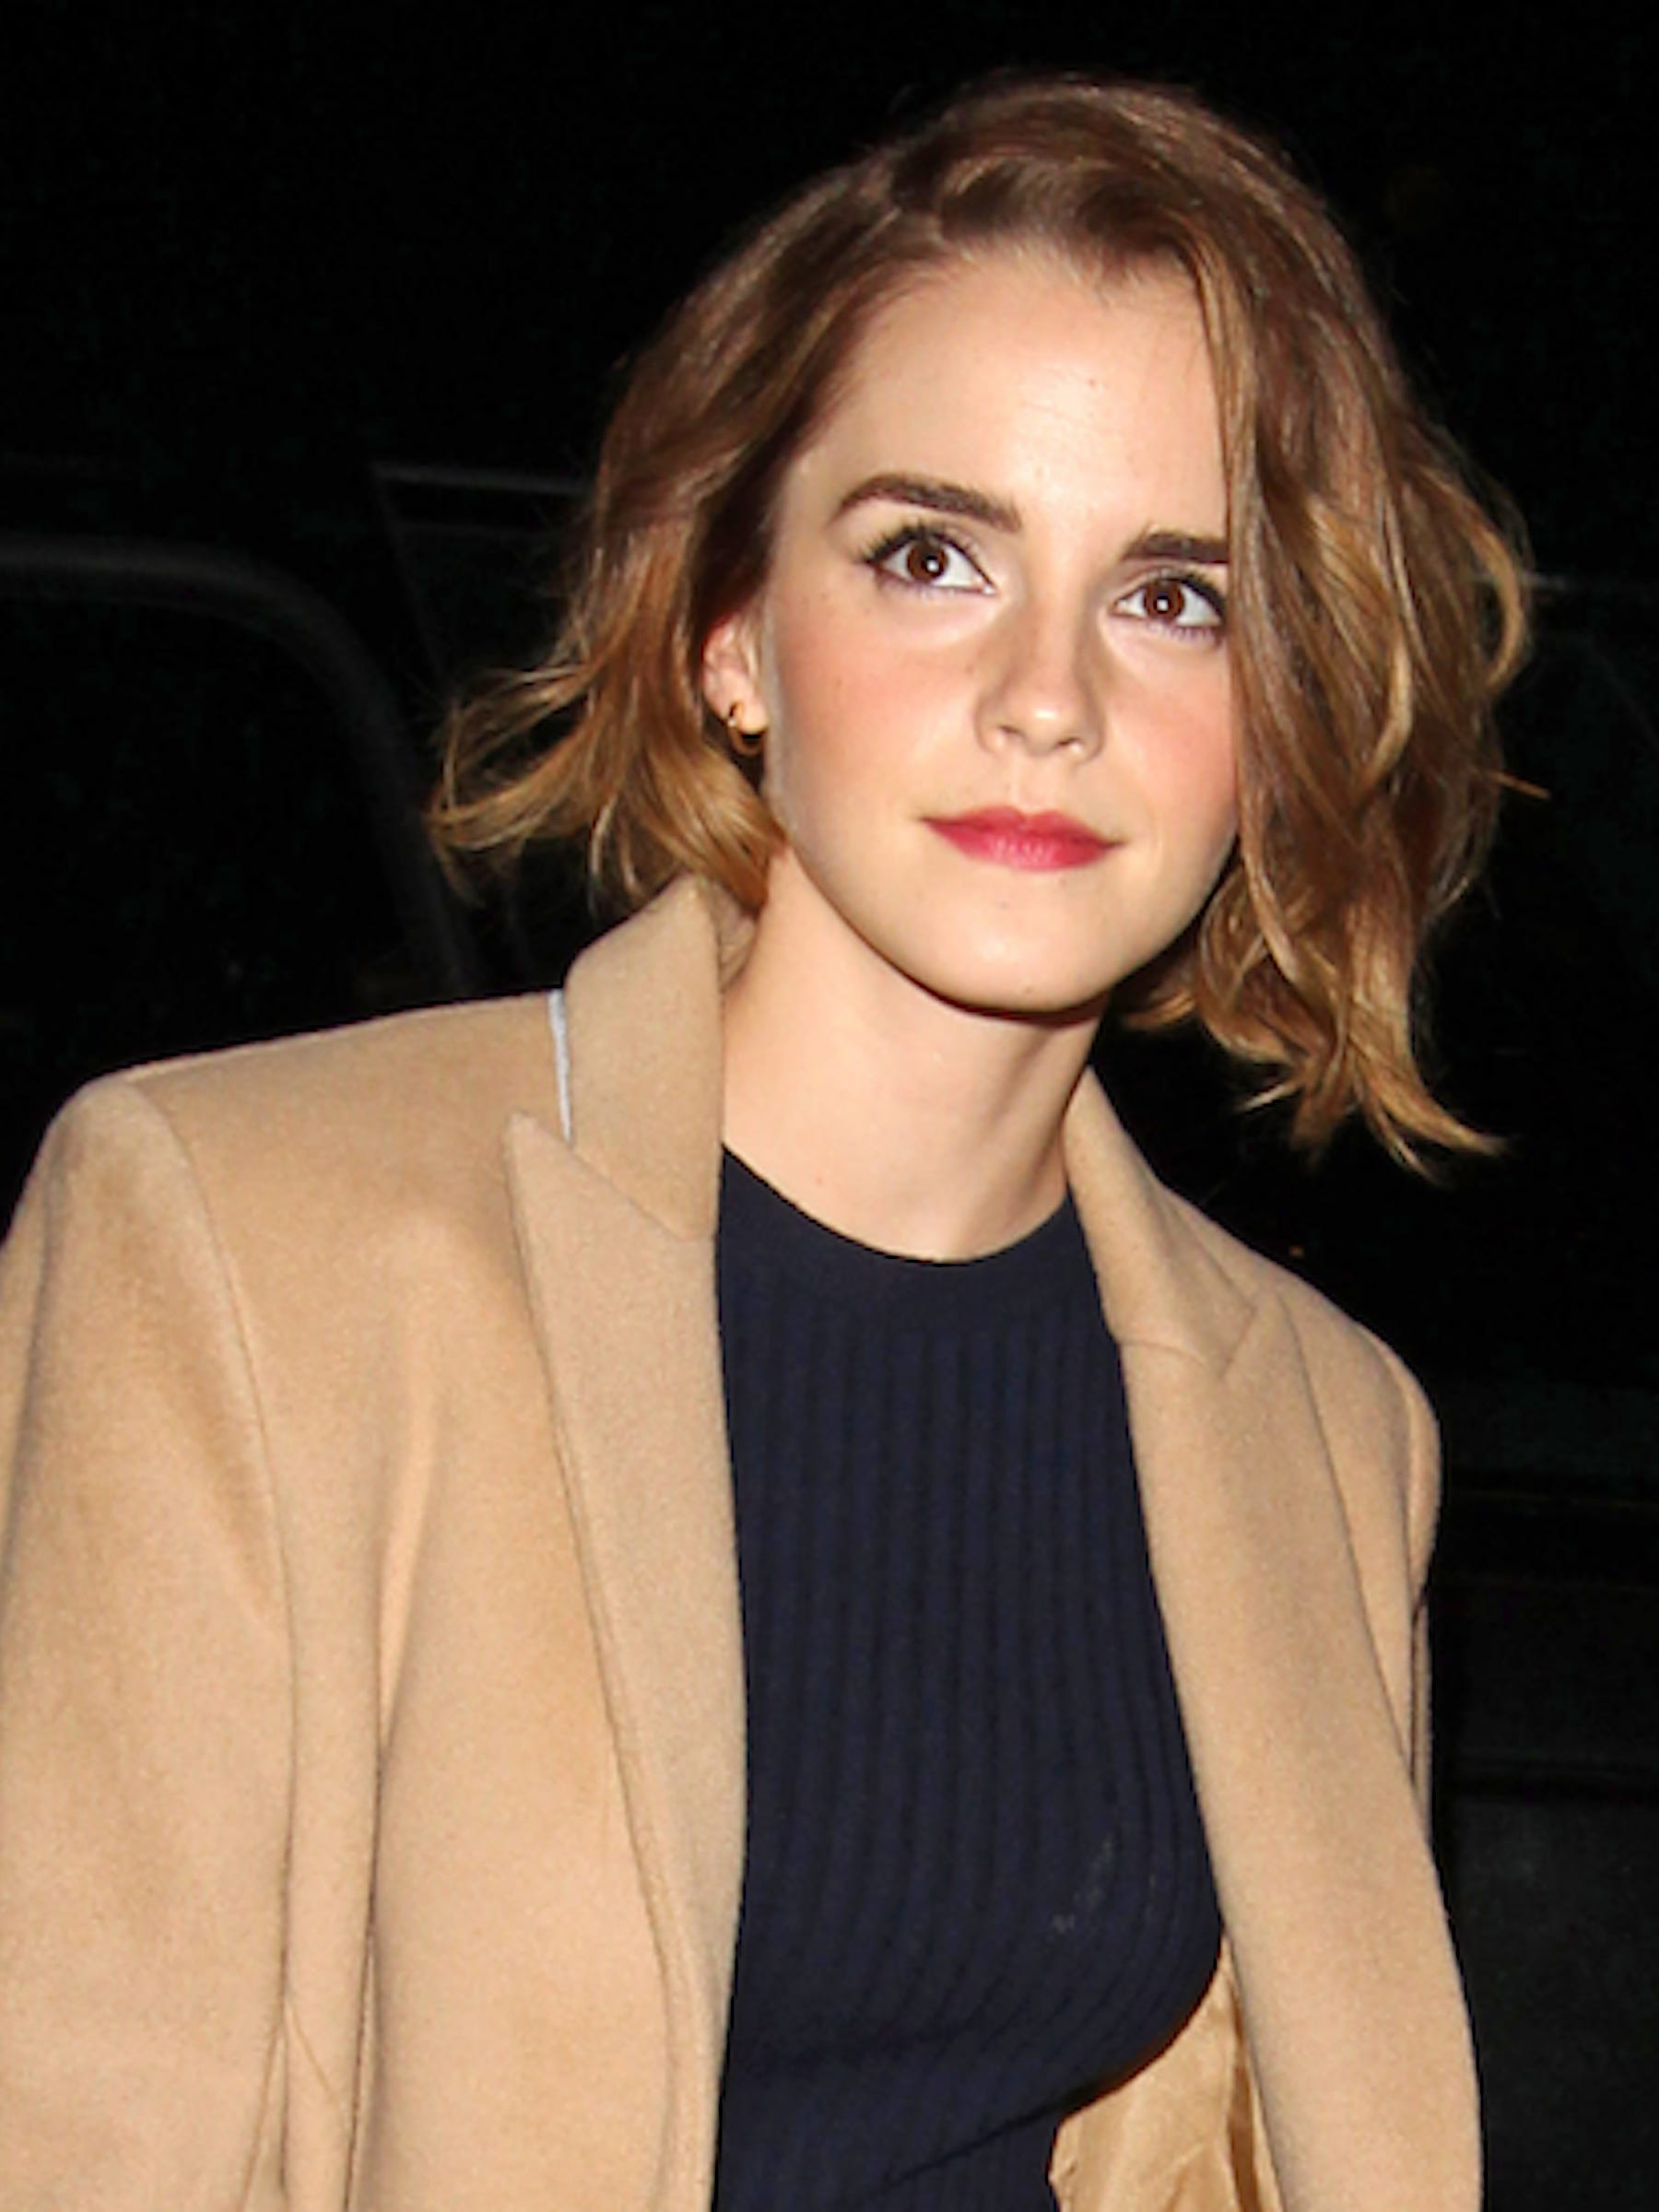 Our Favorite Emma Watson Stories